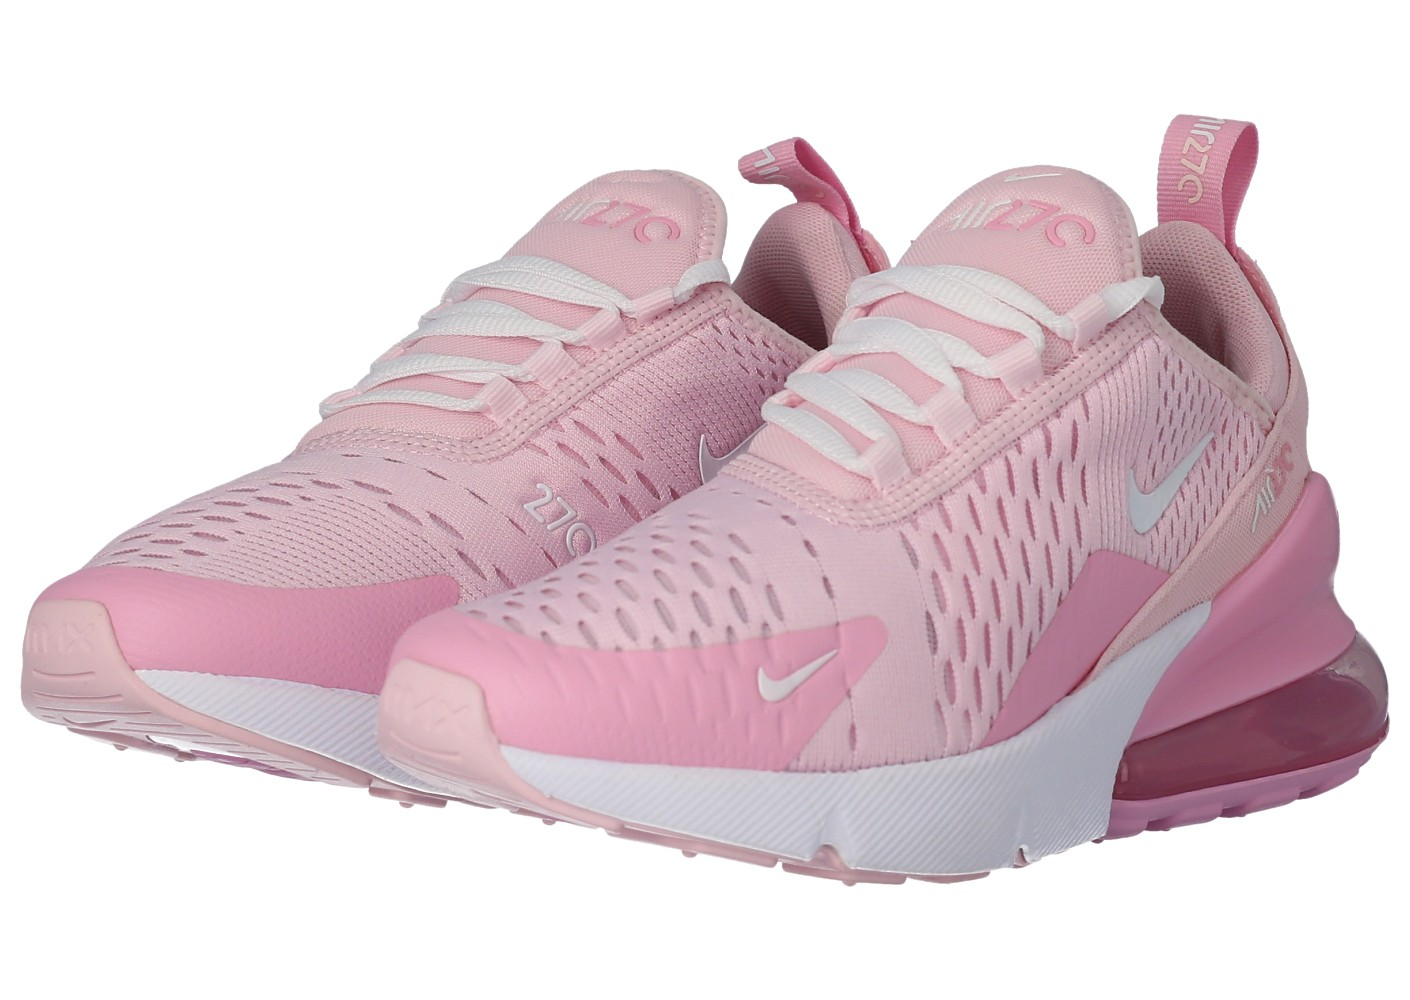 chaussures nike air max grise et rose